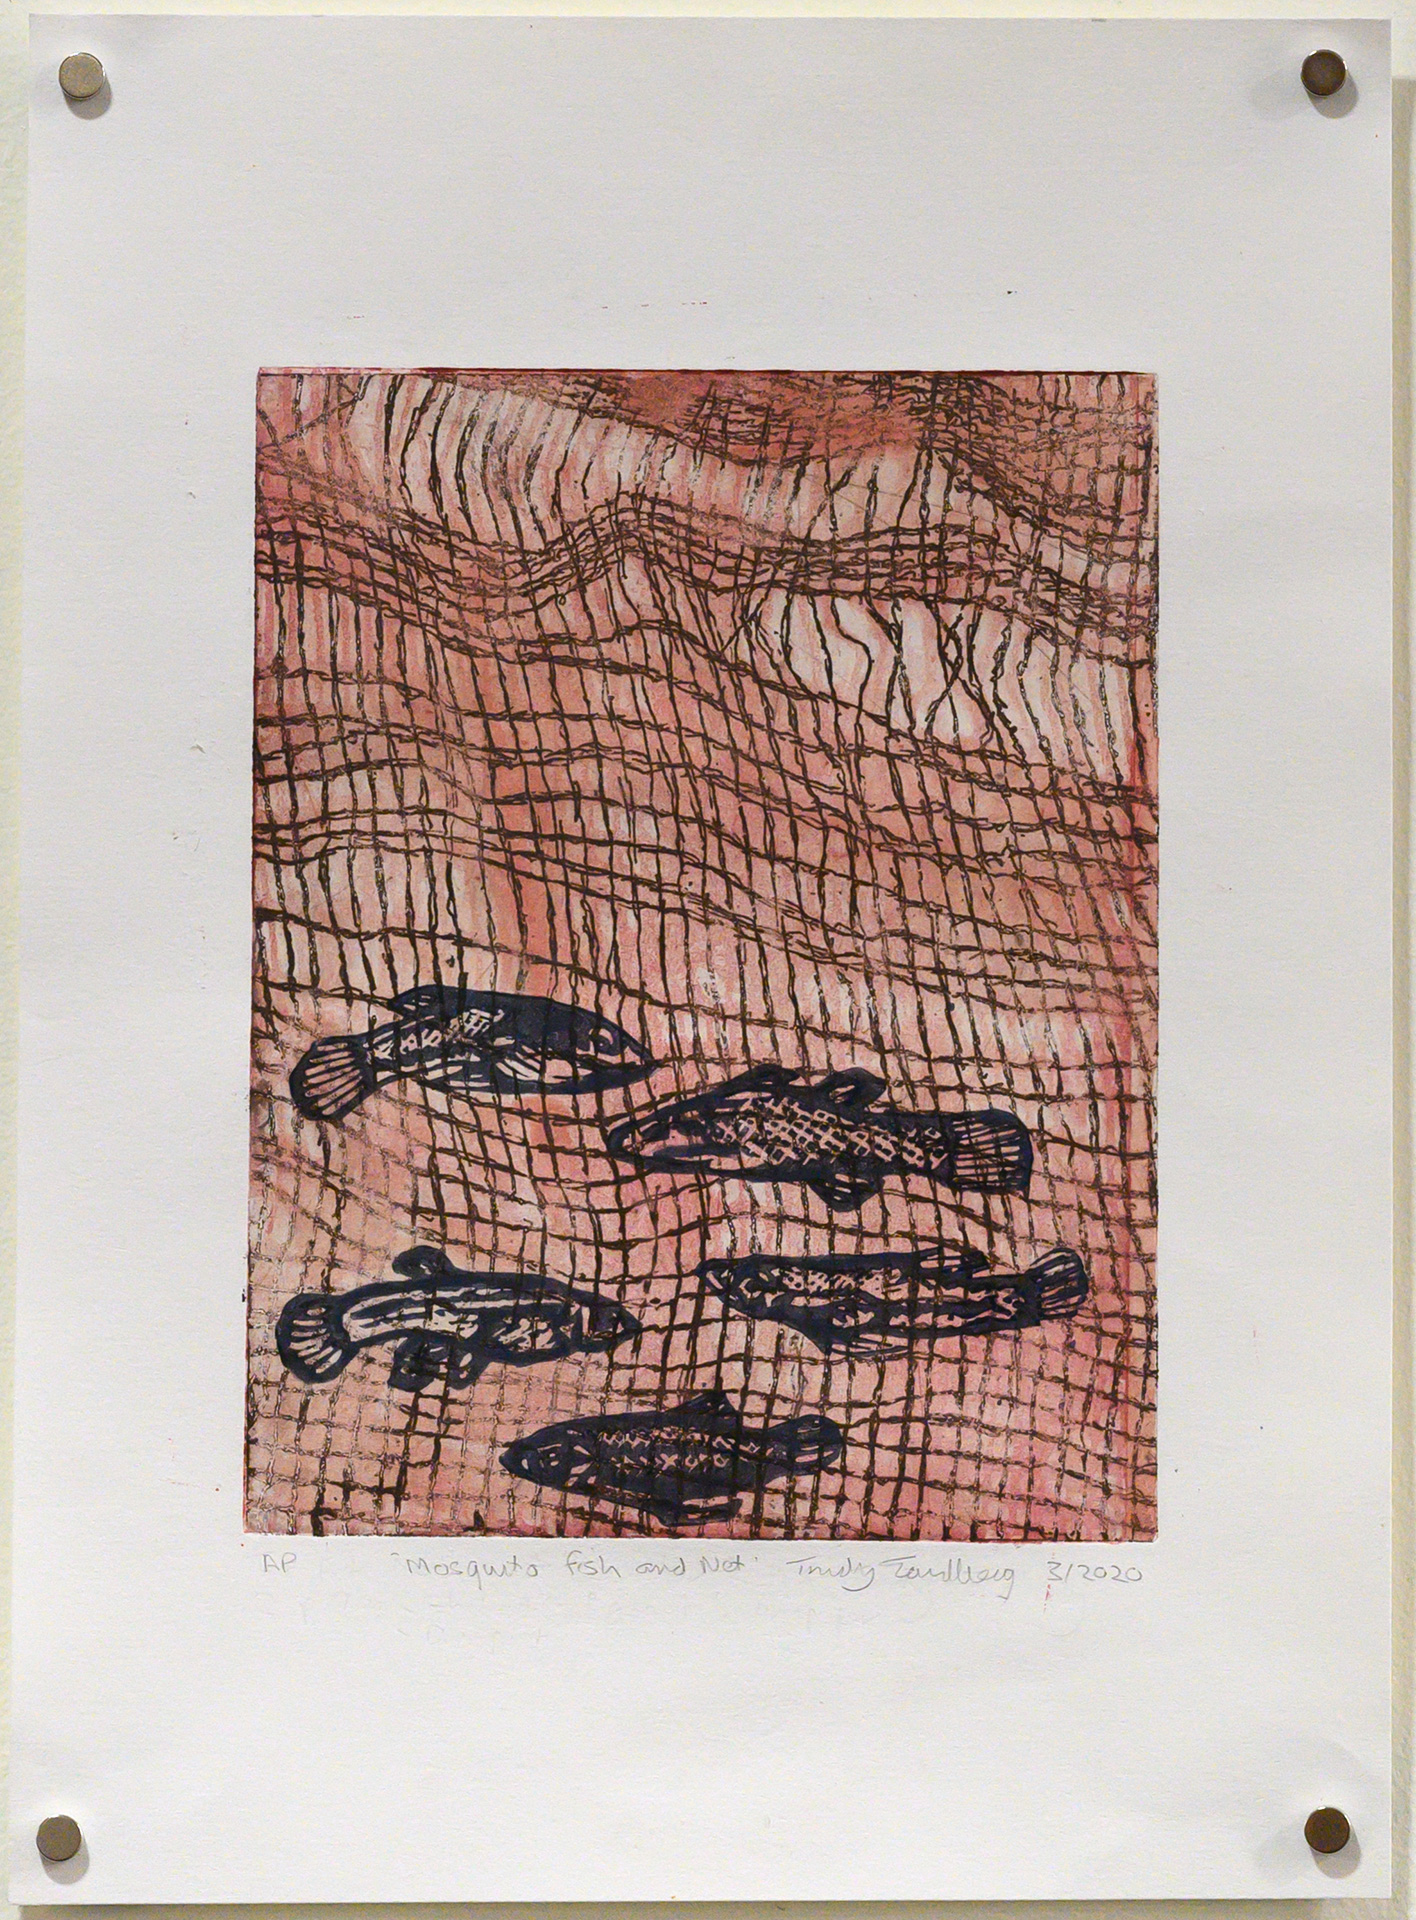 Unframed artwork by Trudy Tandberg of 5 small fish in net with orange background